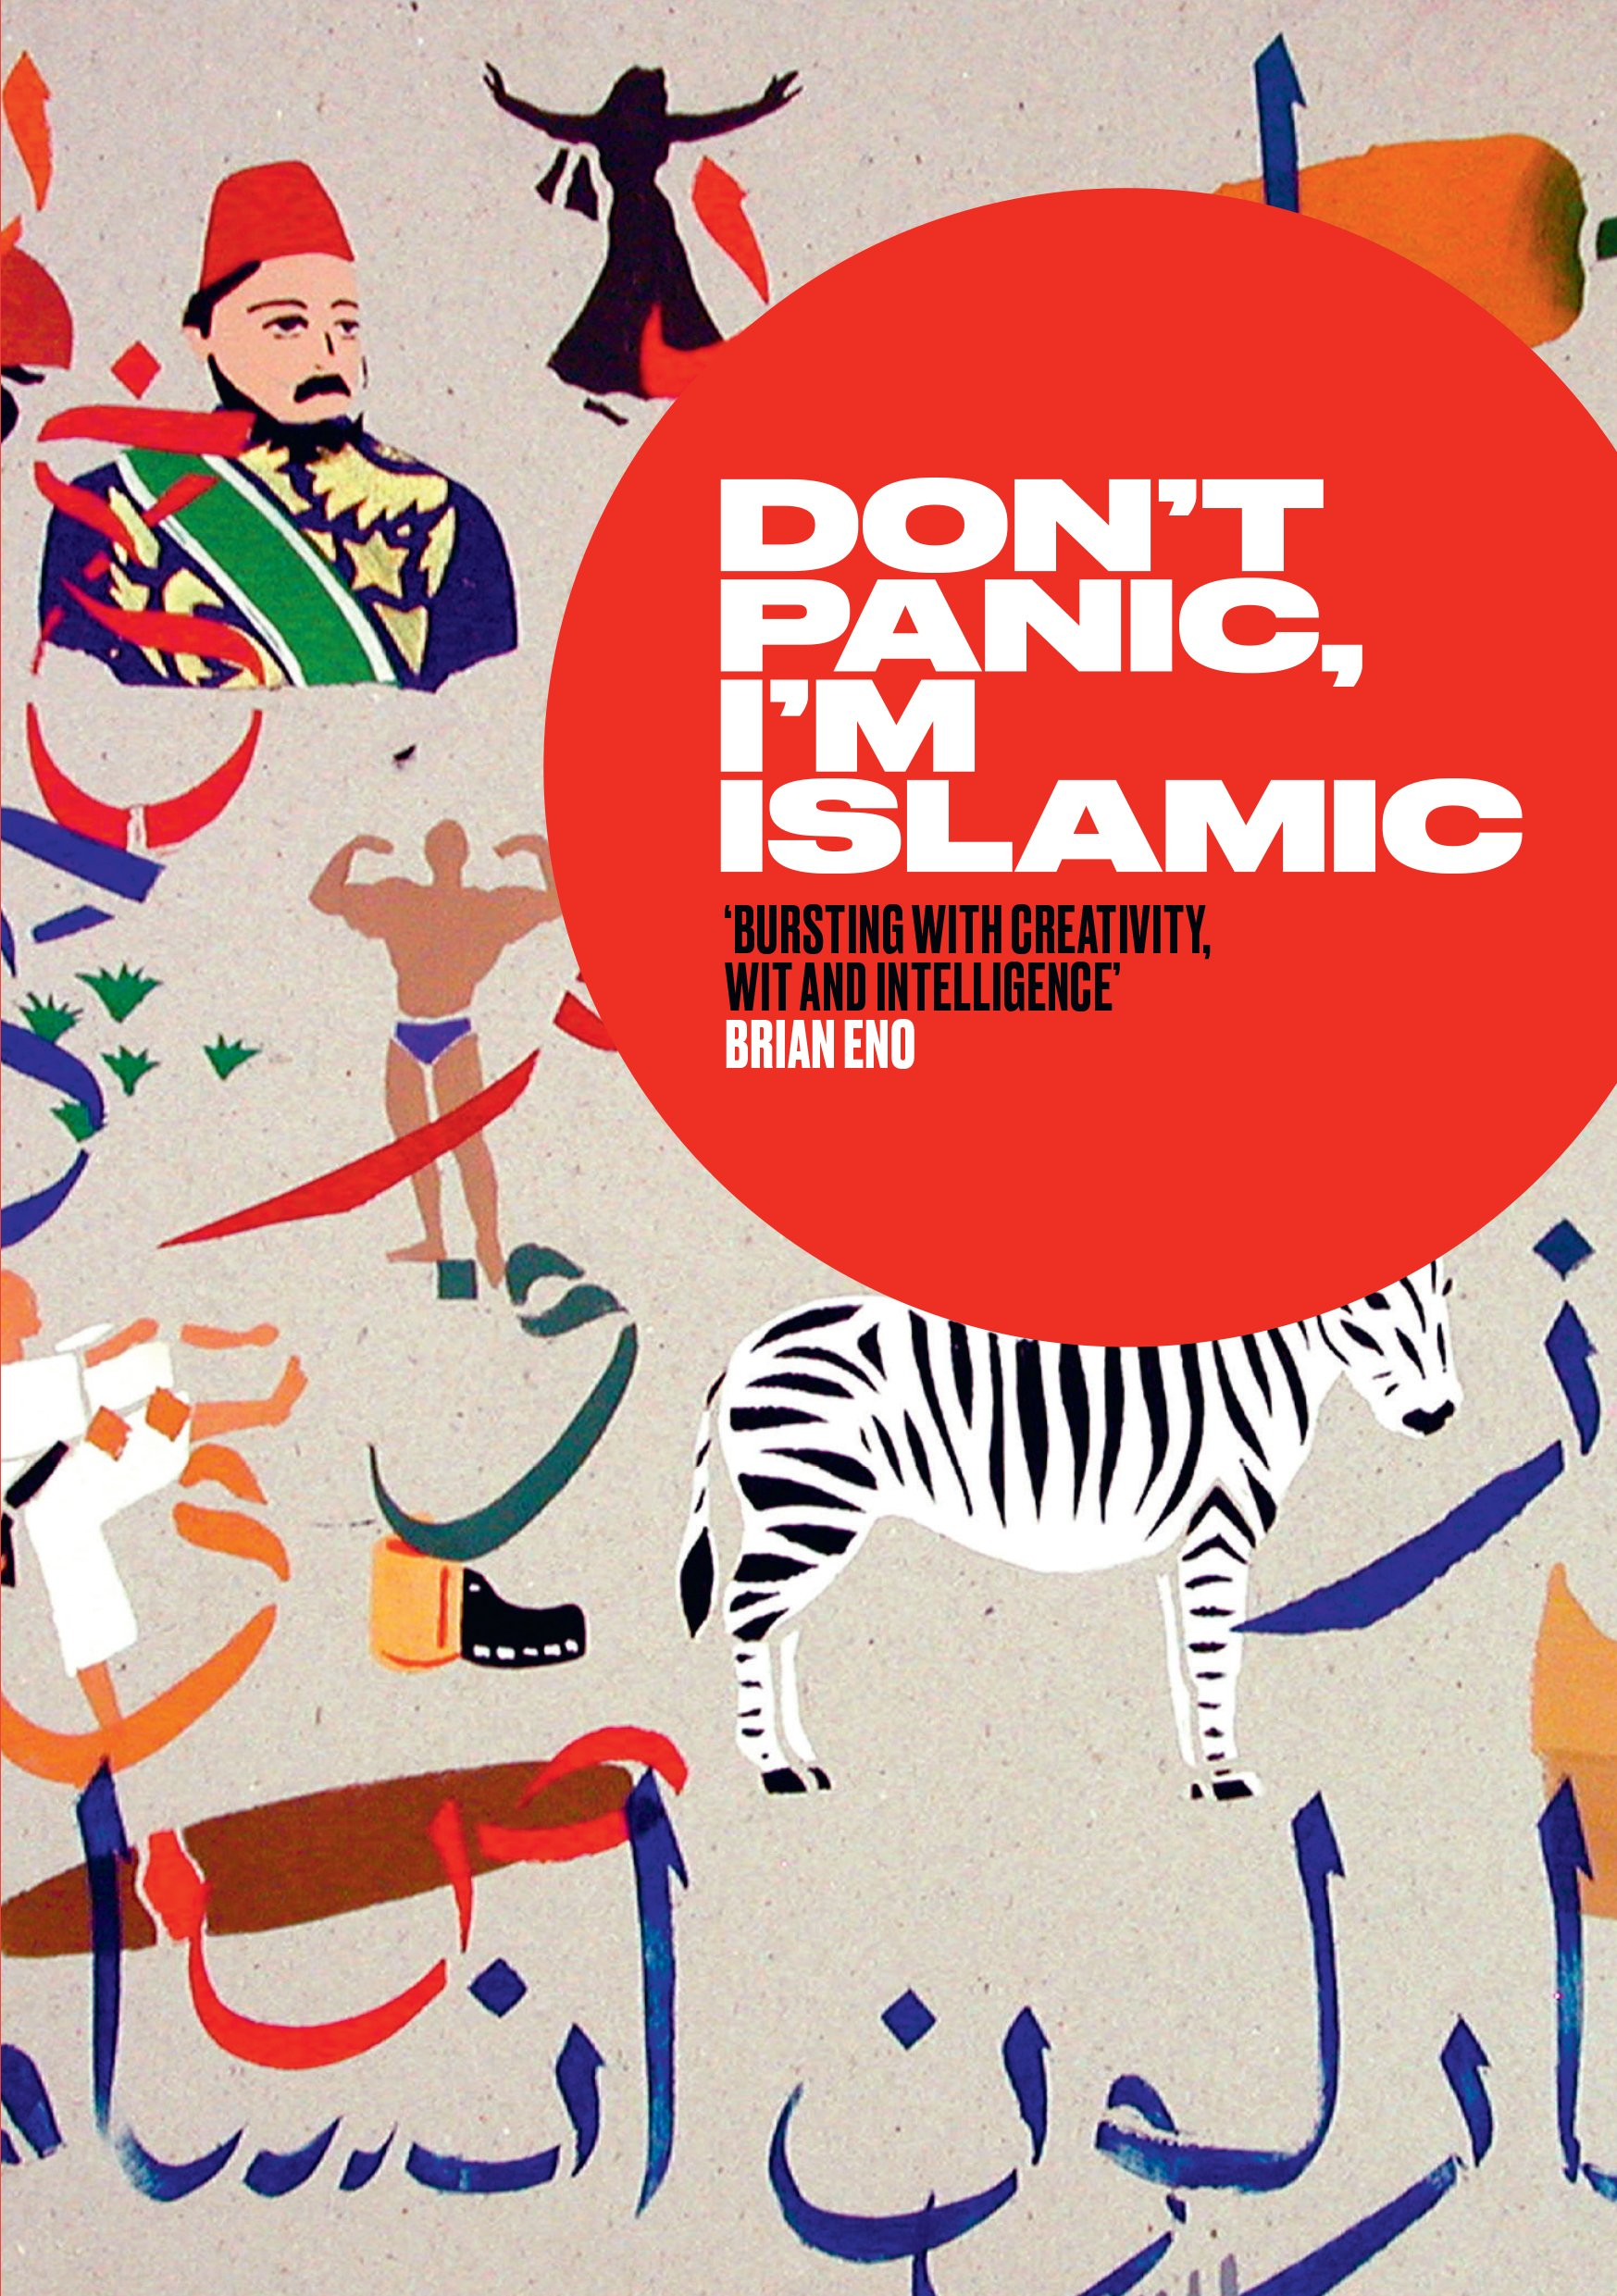 dont panic im islamic words and pictures on how to stop worrying and learn to love the neighbour next door